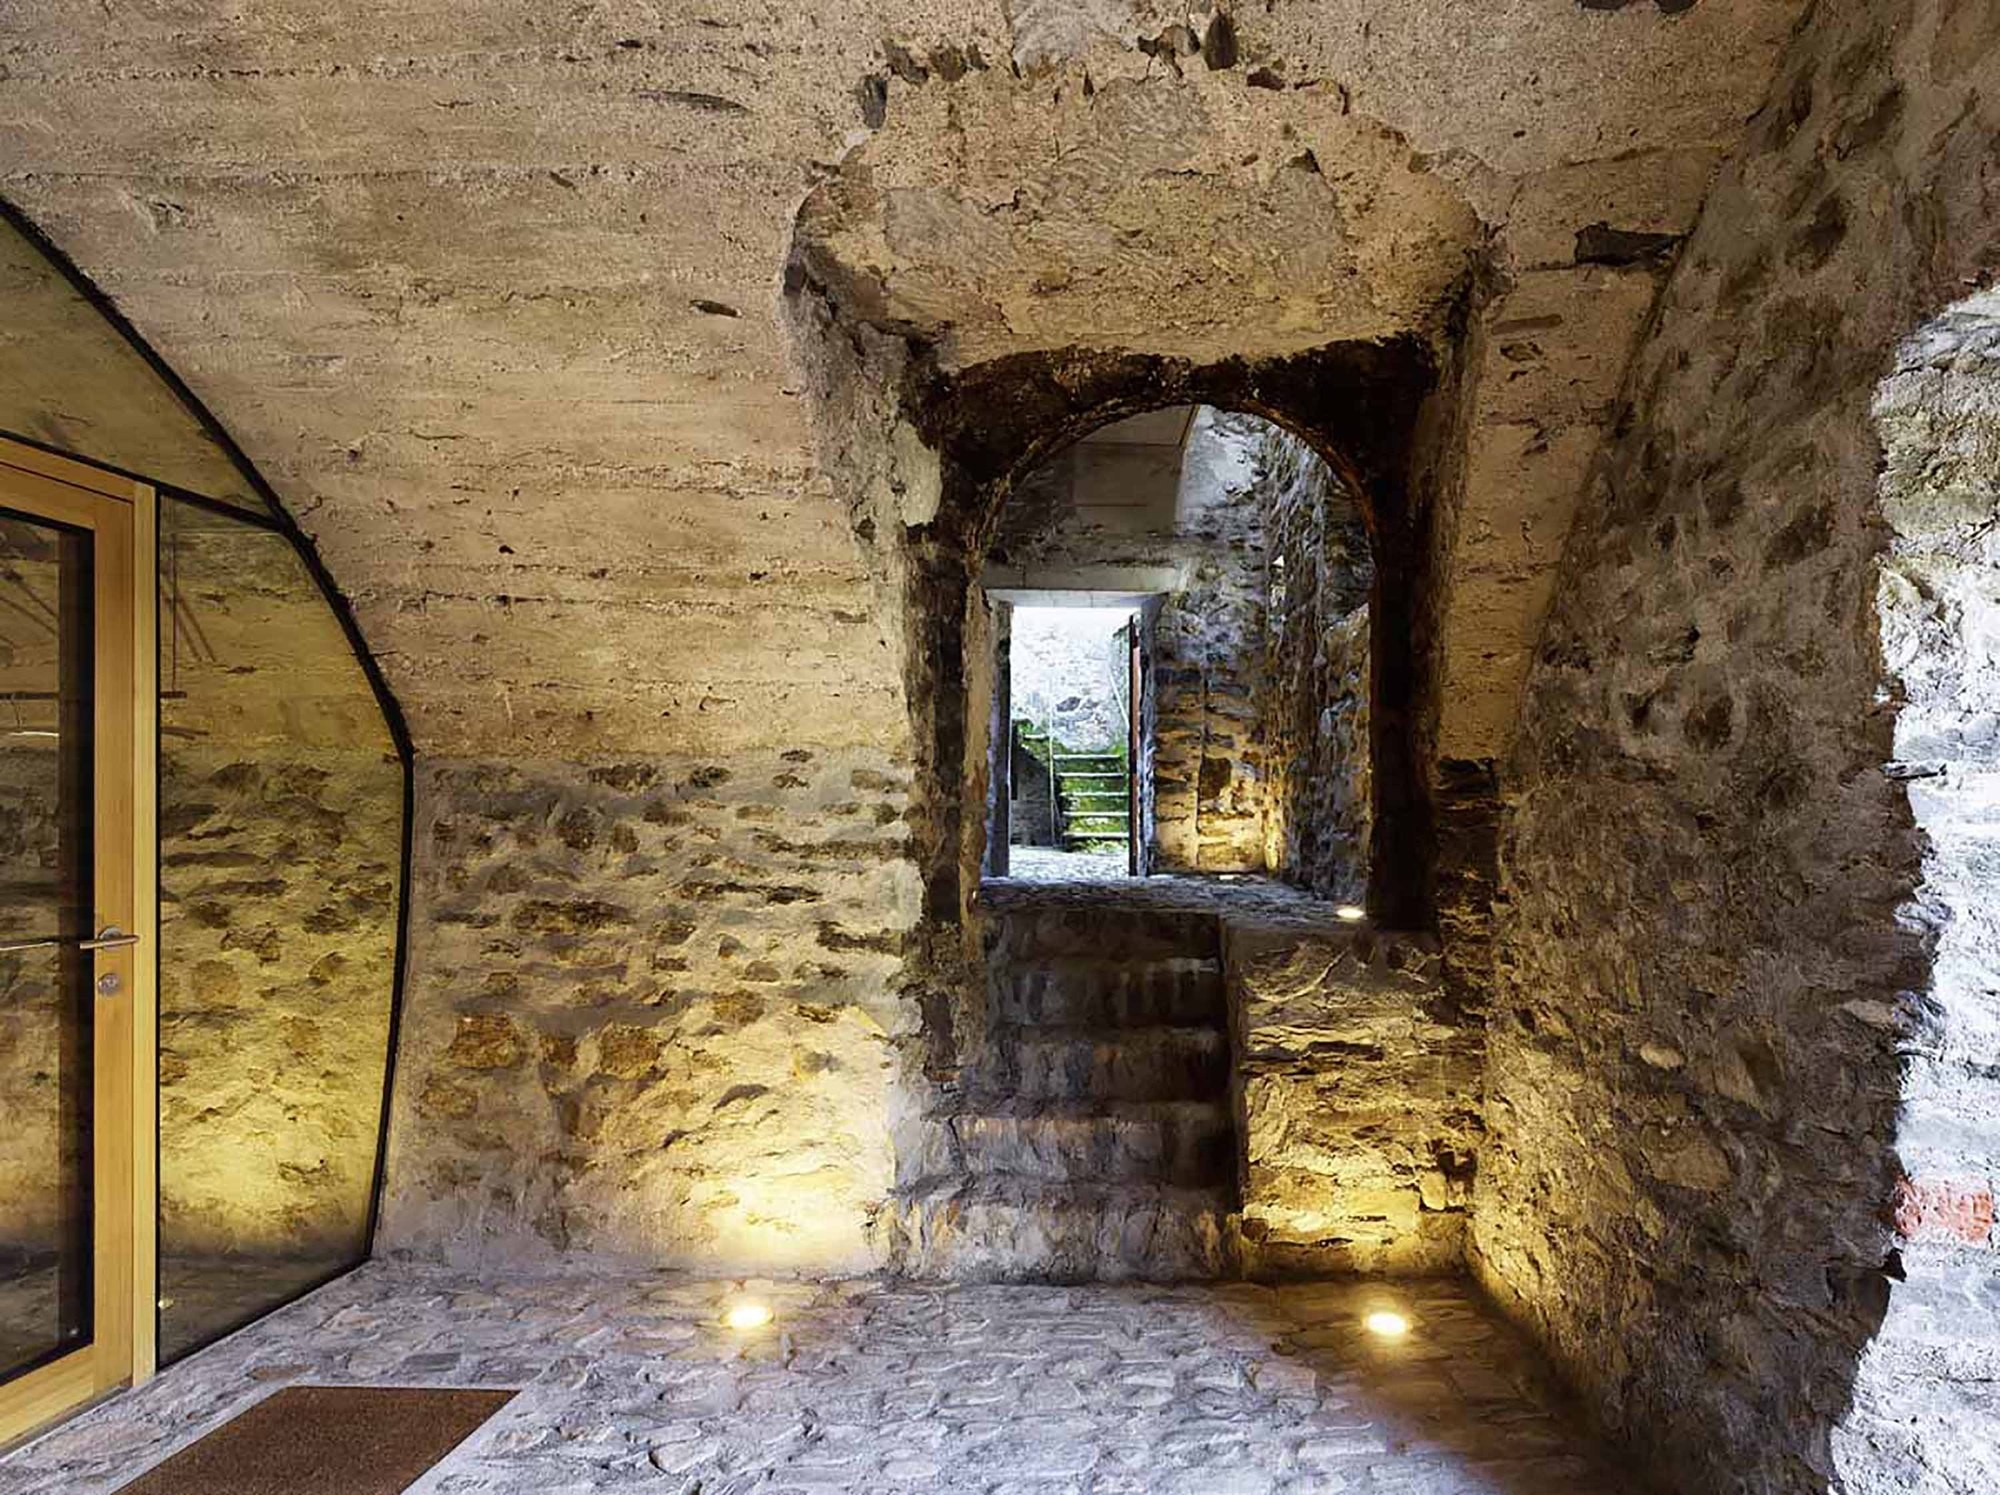 Conversion of a stone house in the Scaiano village centre. Imagen © Hannes Henz